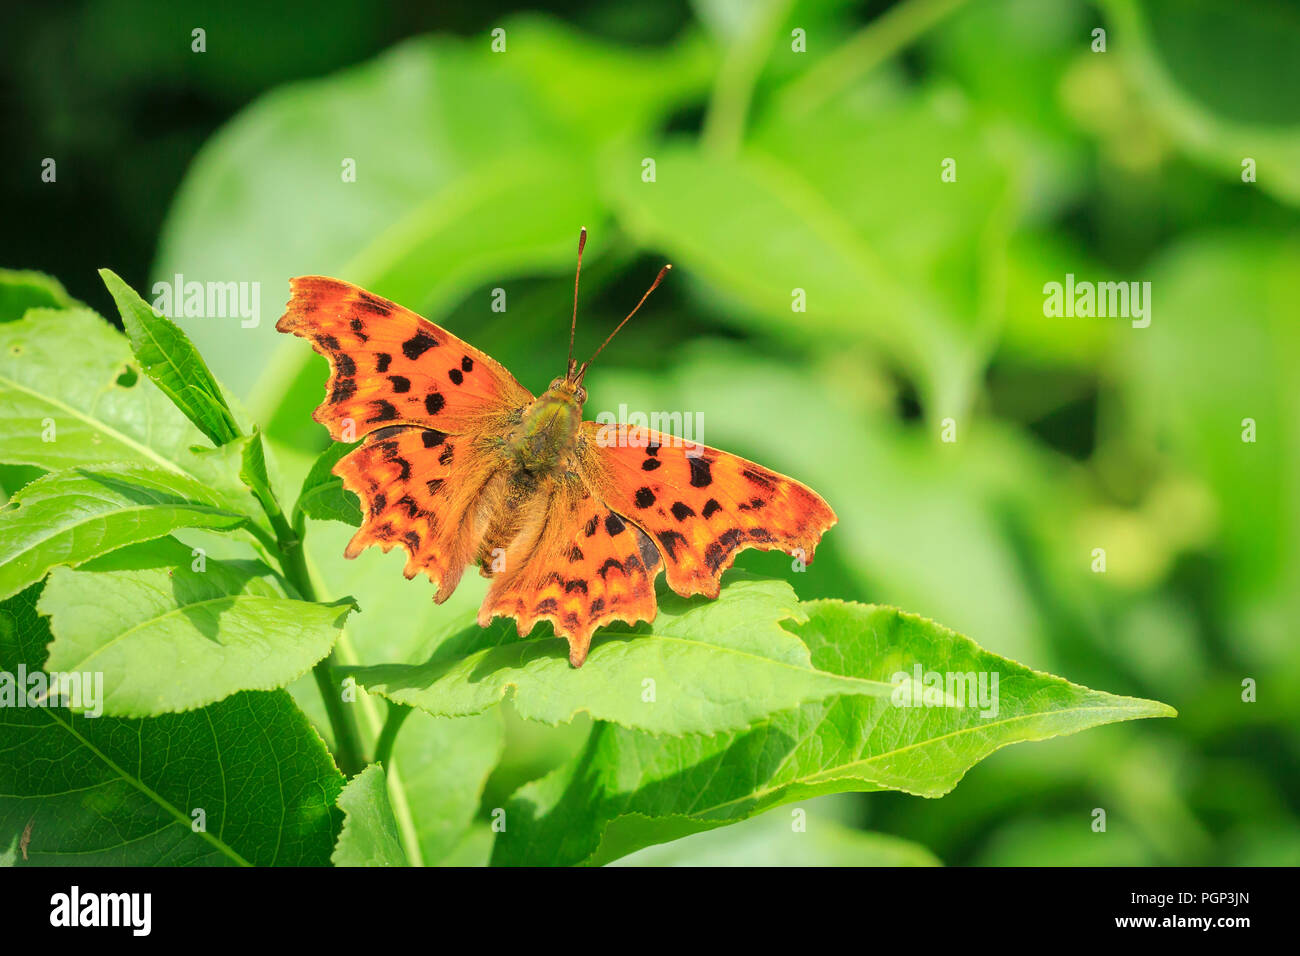 Comma butterfly (Polygonia c-album) resting on vegetation in a forest - Stock Image